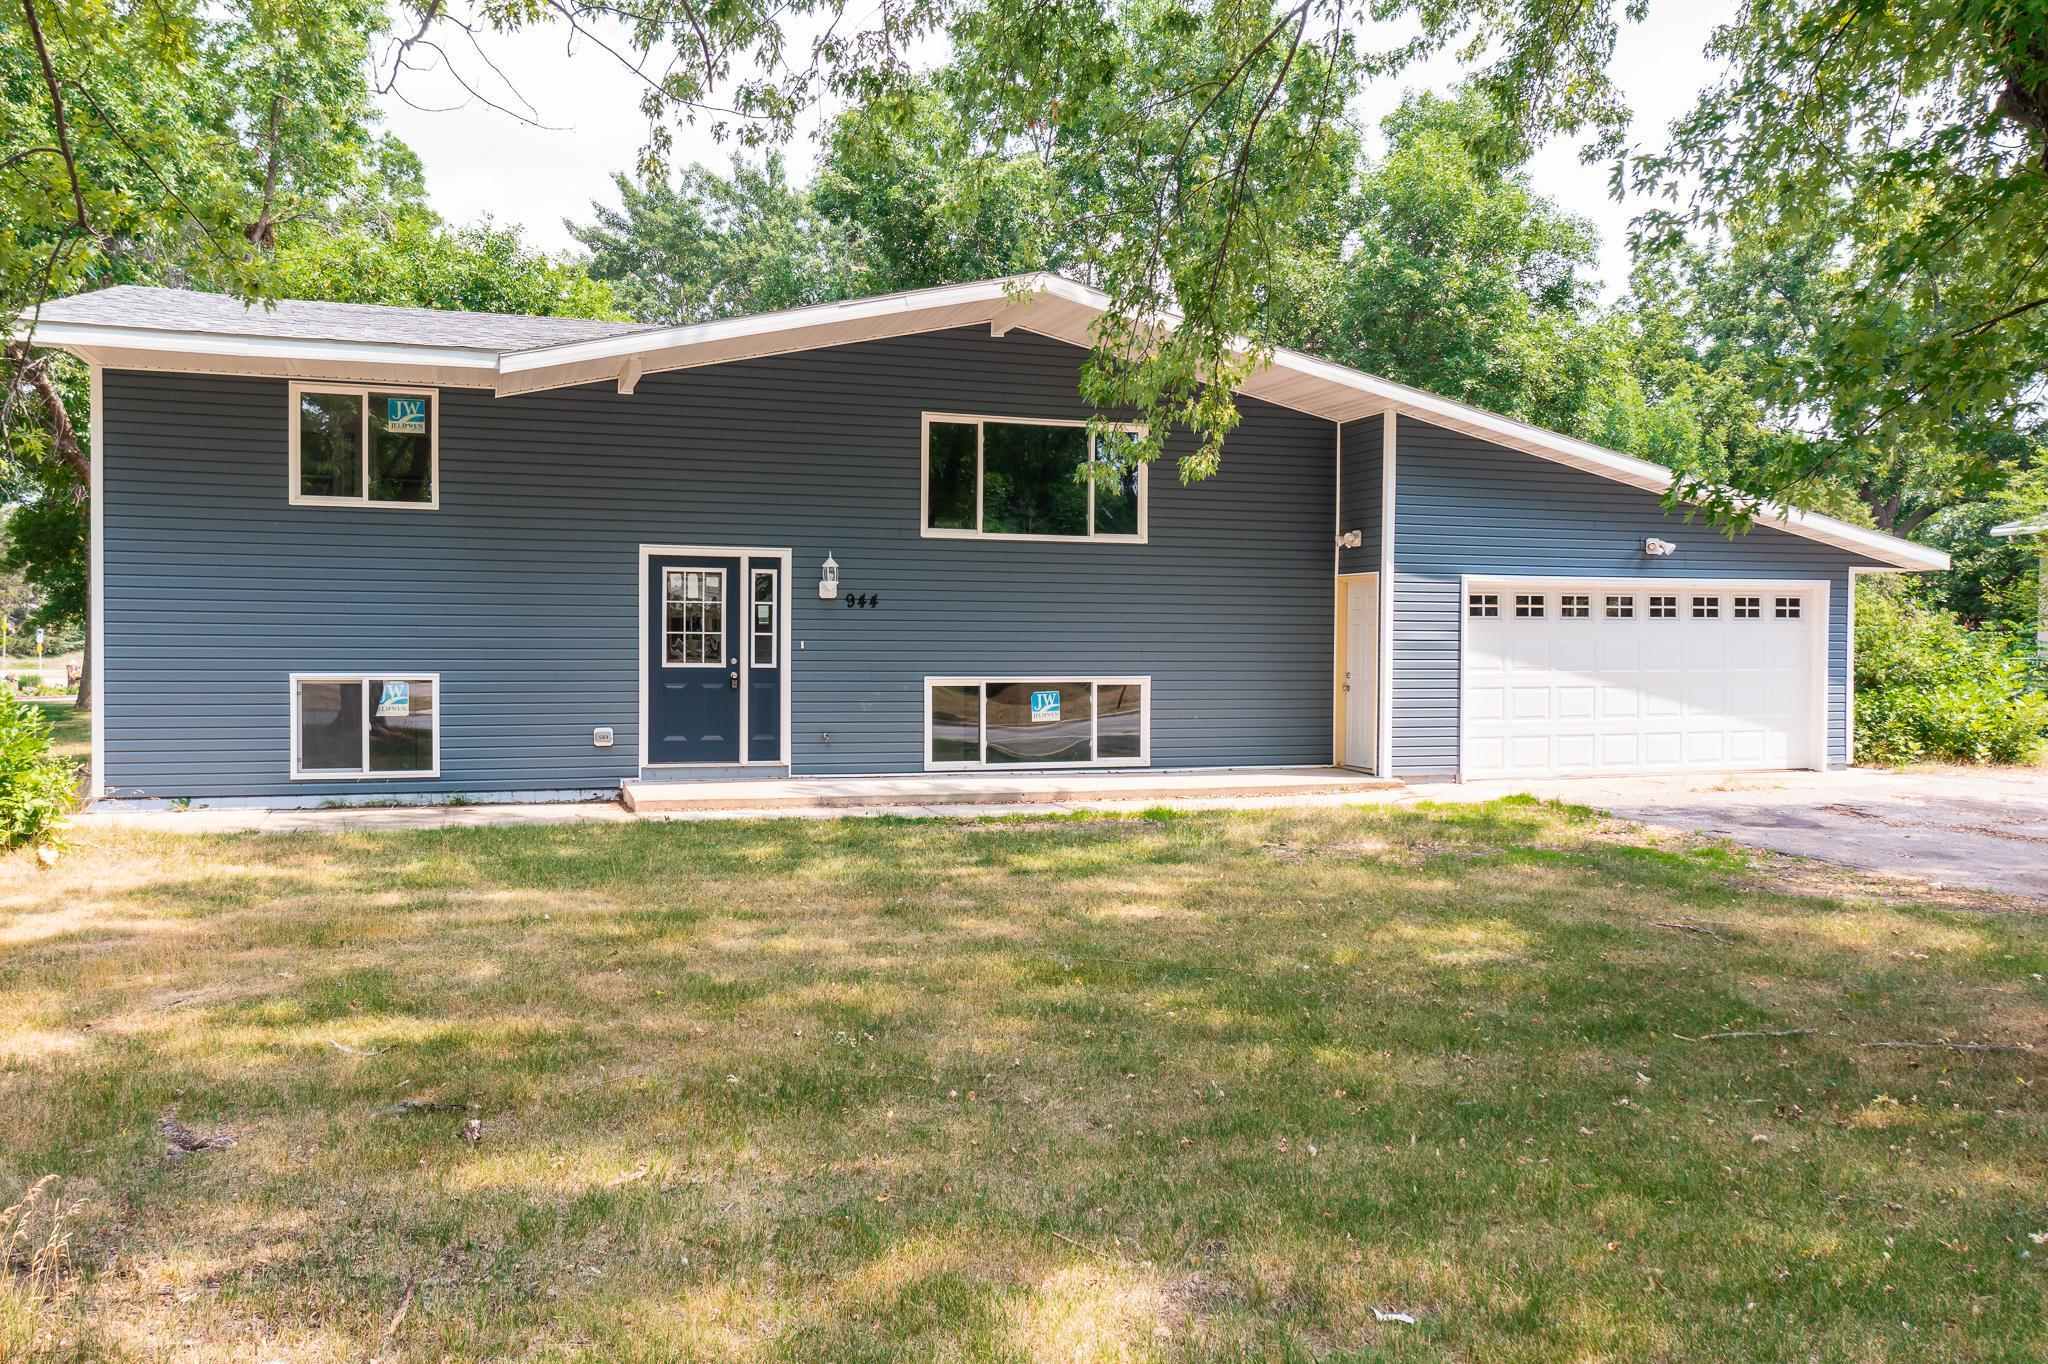 Come check out this amazing fully redone home on a large corner lot. This home offers 4 bedrooms 2 bathrooms with a cozy 4 season sun room. Convenient location right next to shopping and parks.